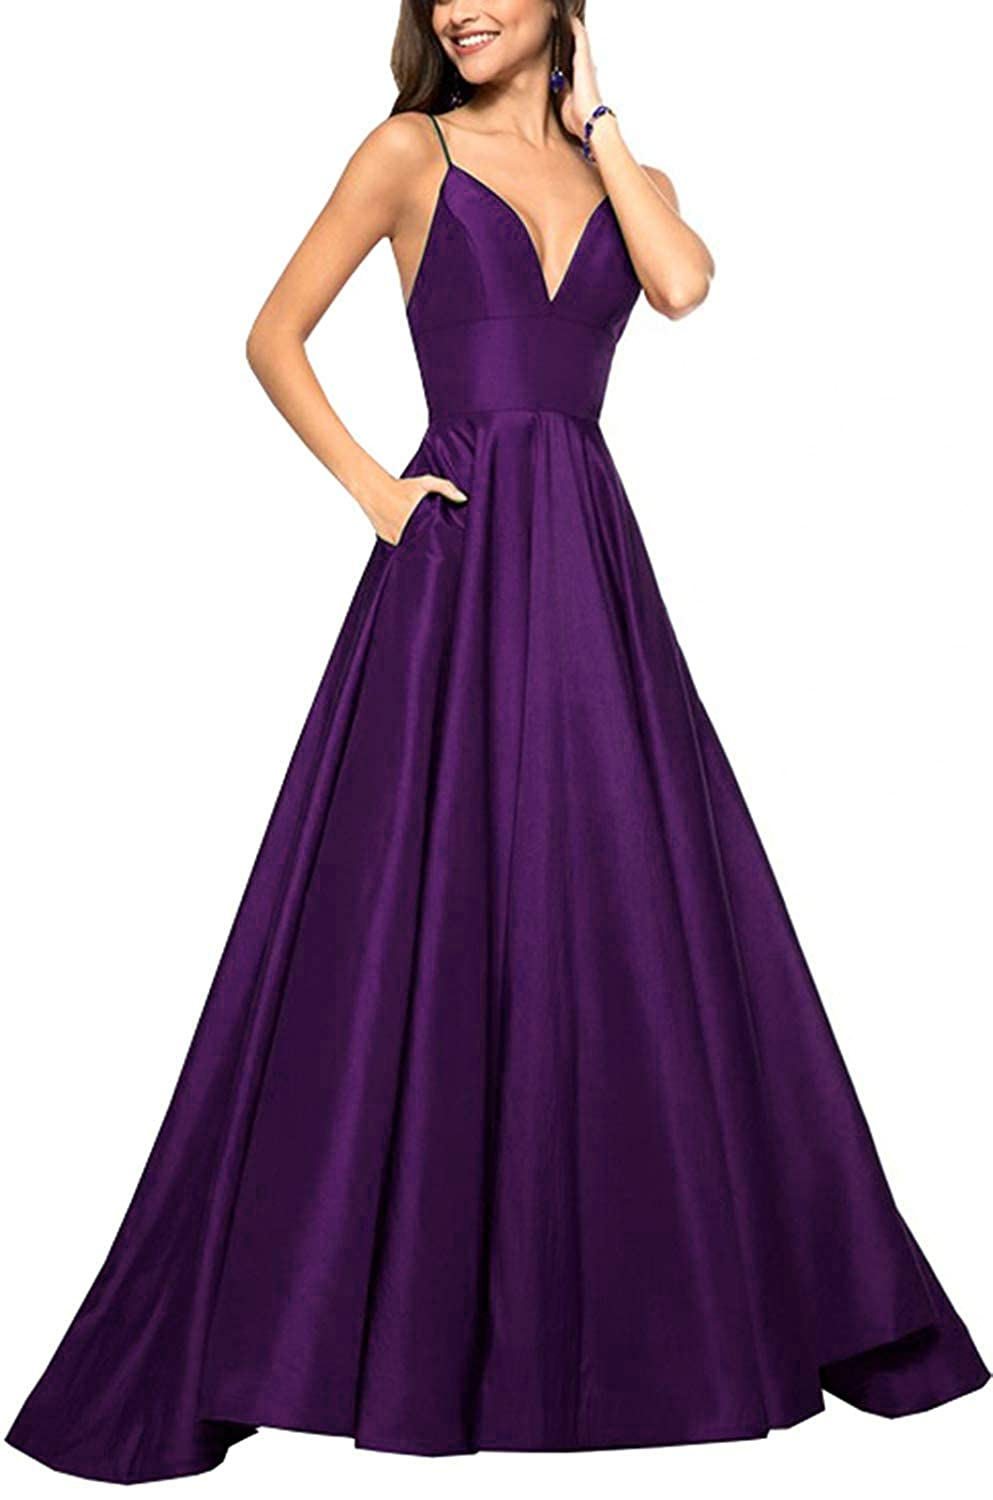 Purple QiJunGe V Neck Evening Party Gown A Line Spaghetti Strap Prom Dress with Pocket